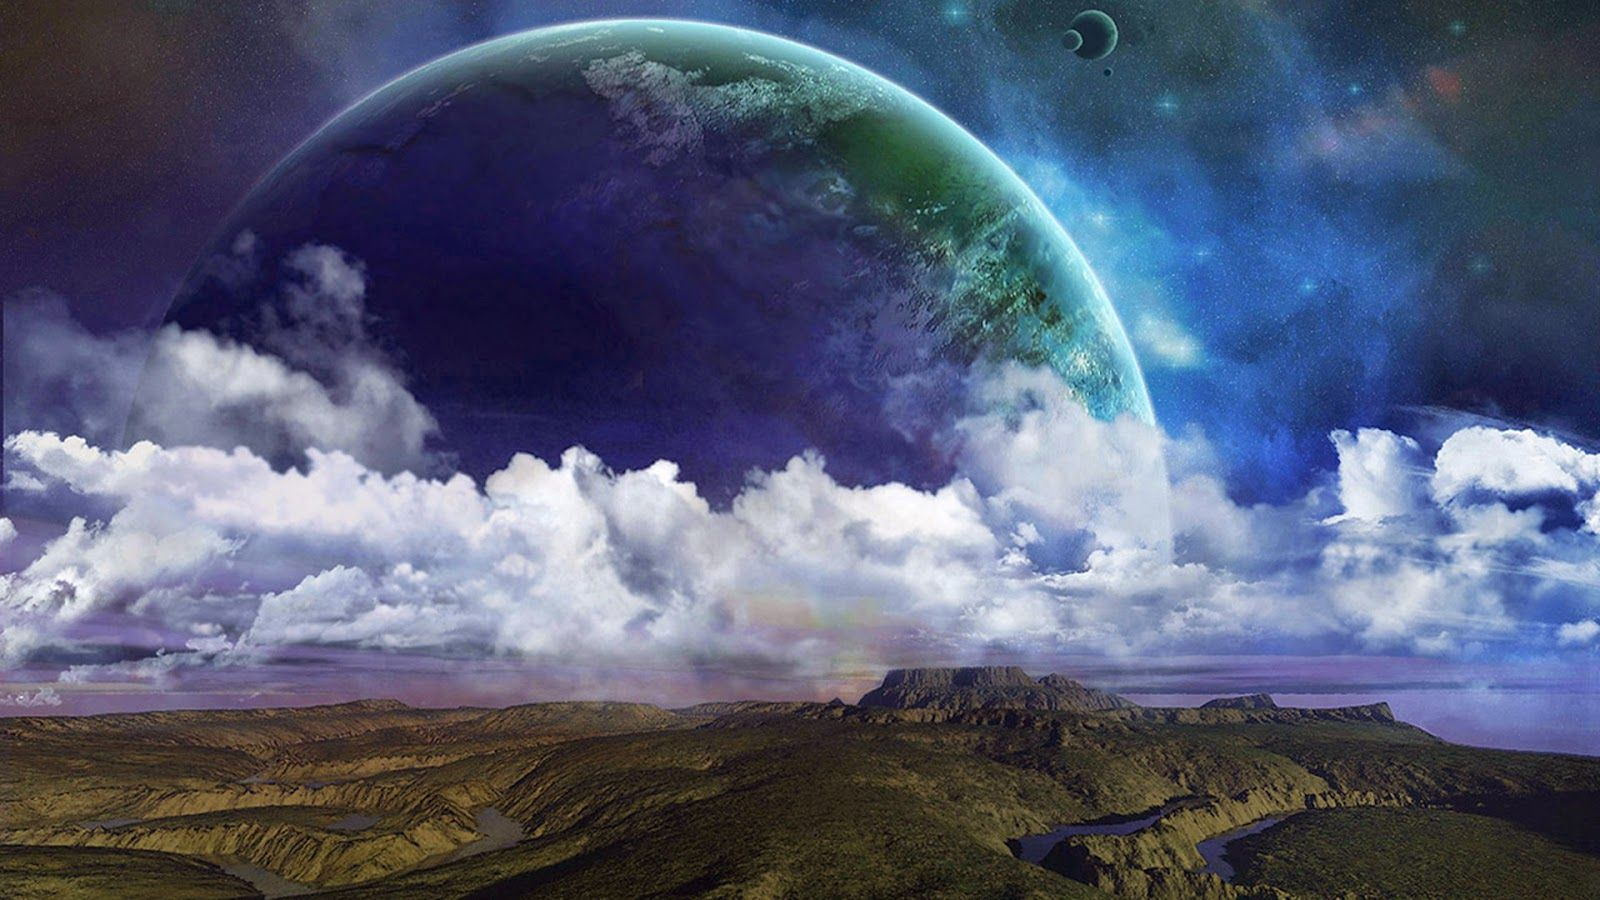 blue earth wallpaper space nature wallpapers for free download (we